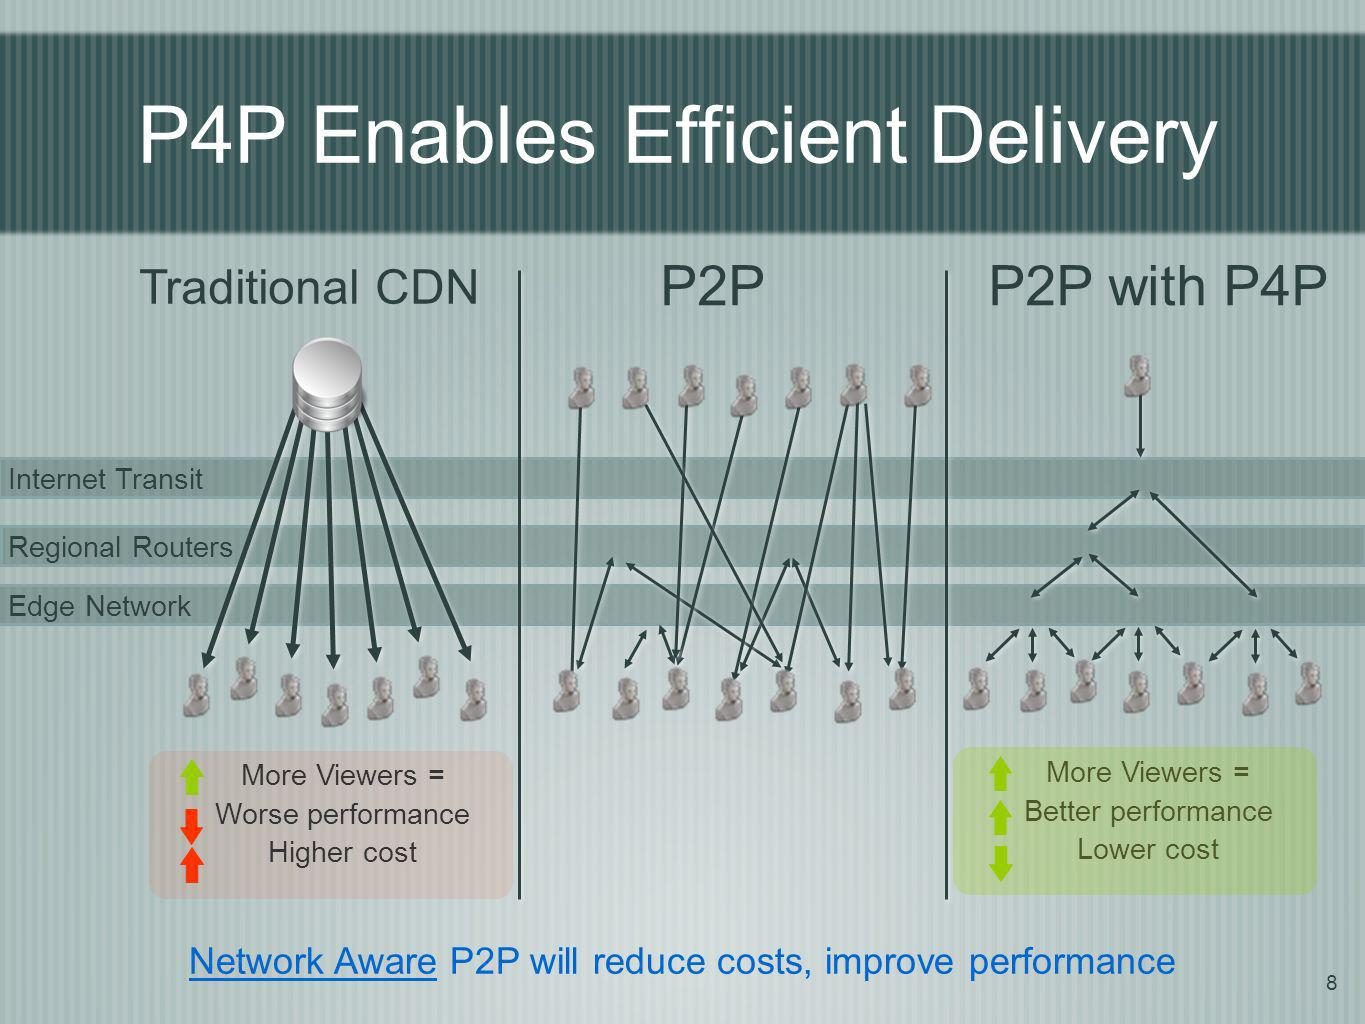 P4P Enables Efficient Delivery